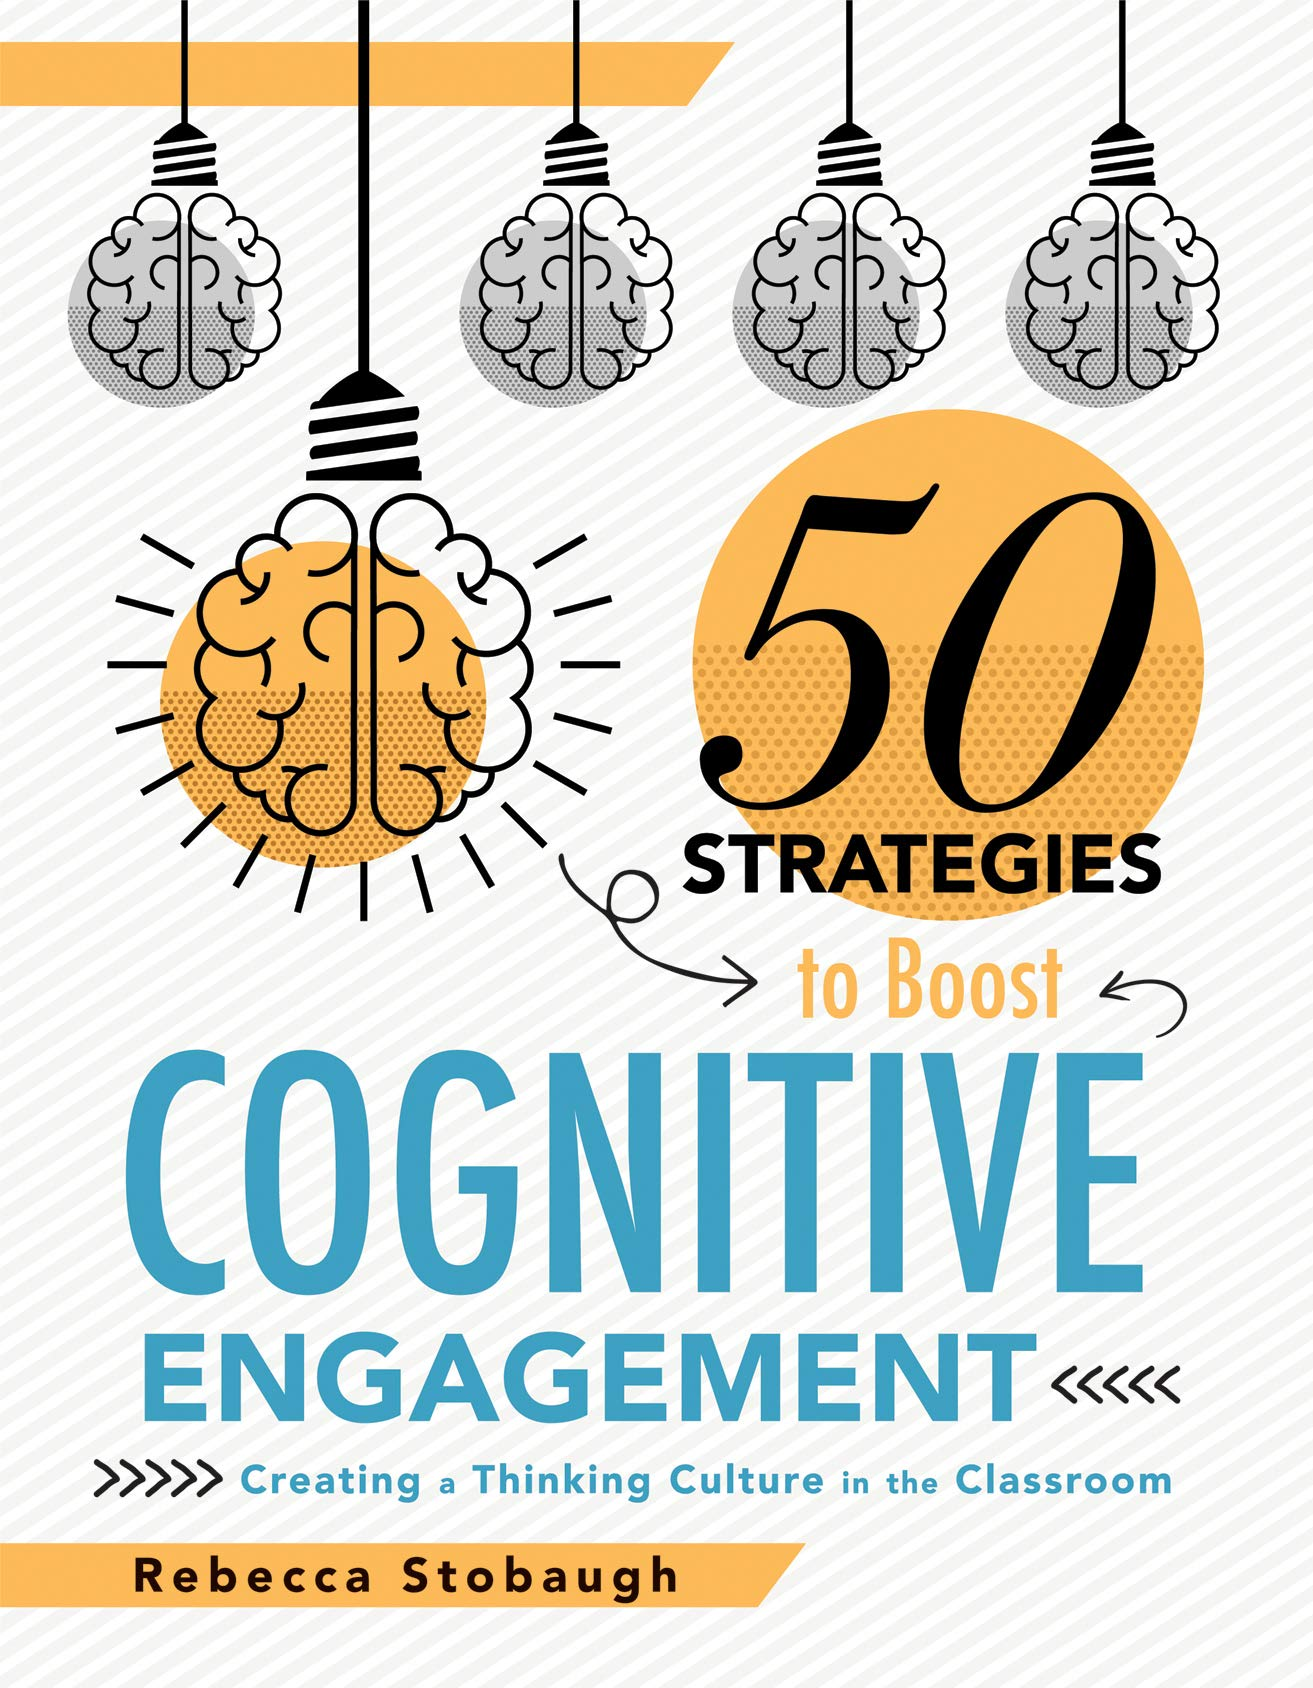 Download Fifty Strategies To Boost Cognitive Engagement: Creating A Thinking Culture In The Classroom (50 Teaching Strategies To Su... 